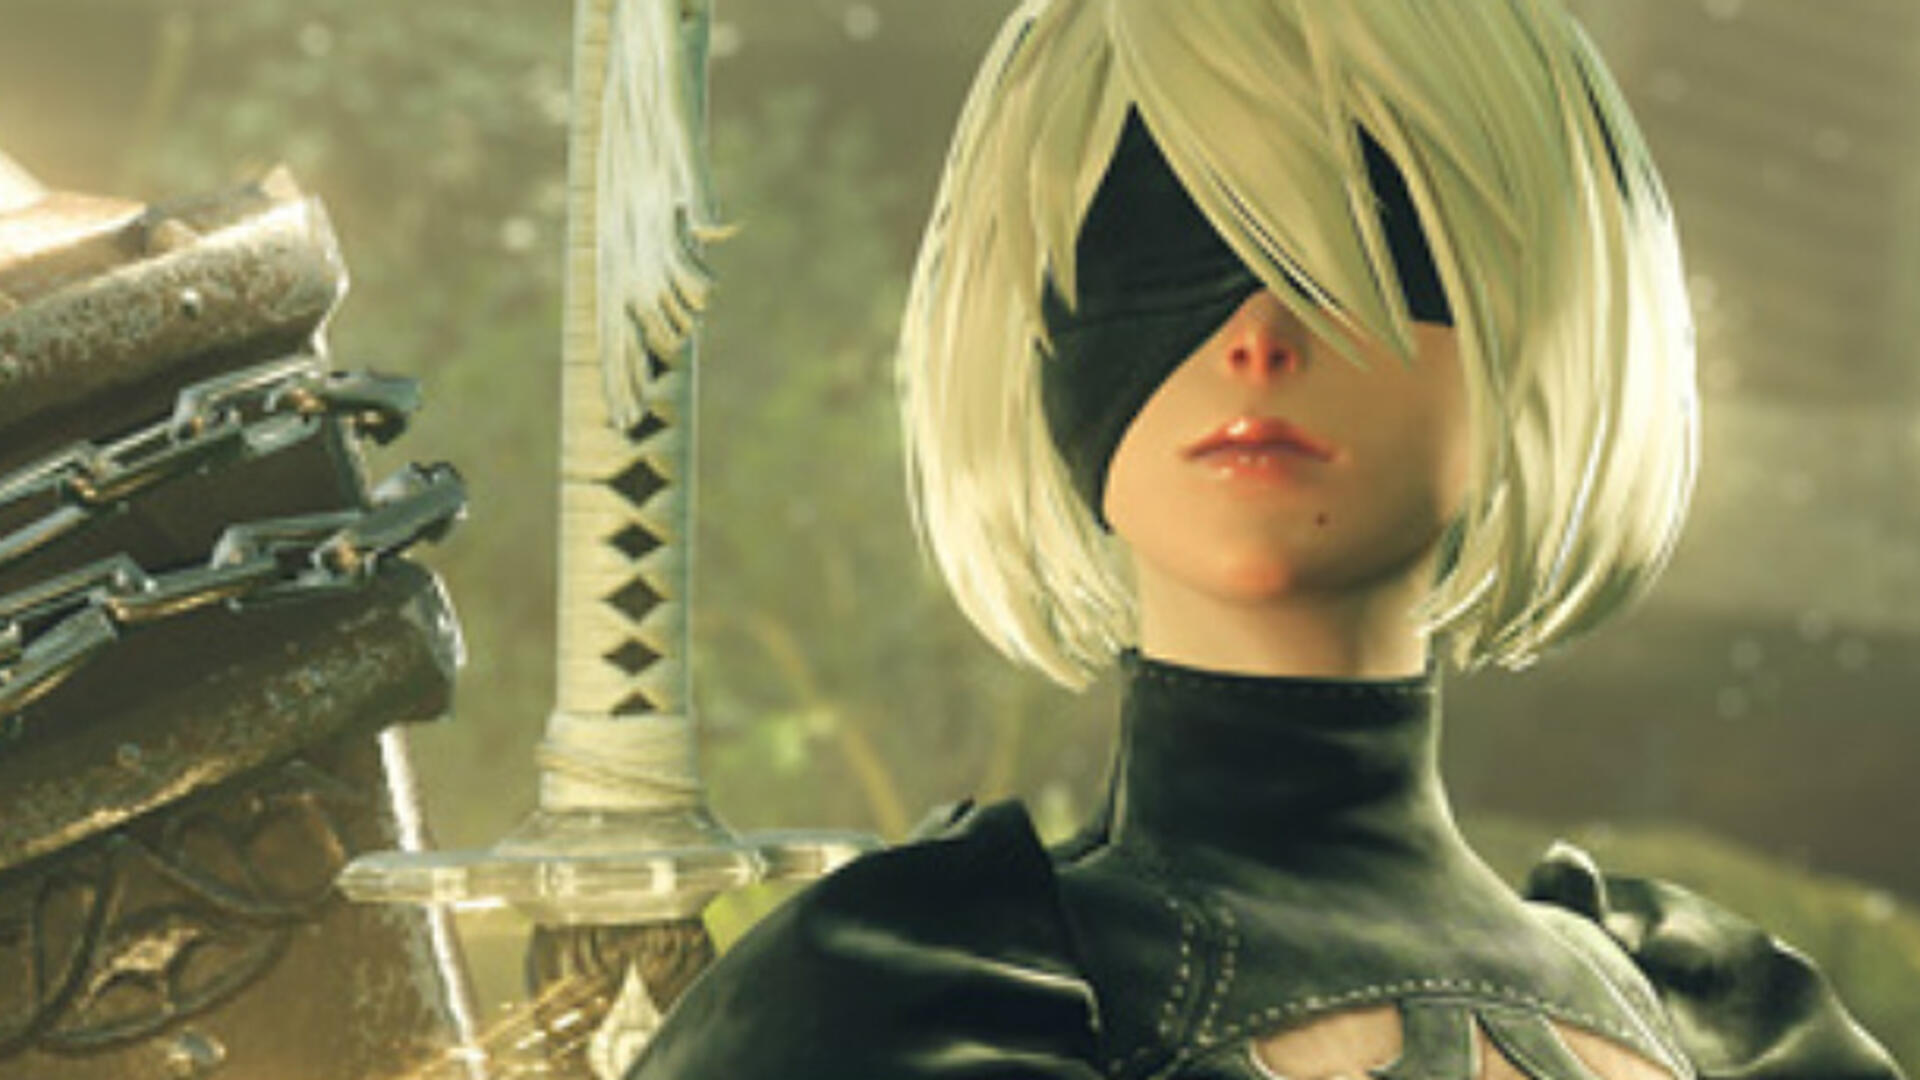 Nier: Automata's 2B Coming to Soul Calibur 6 This Month